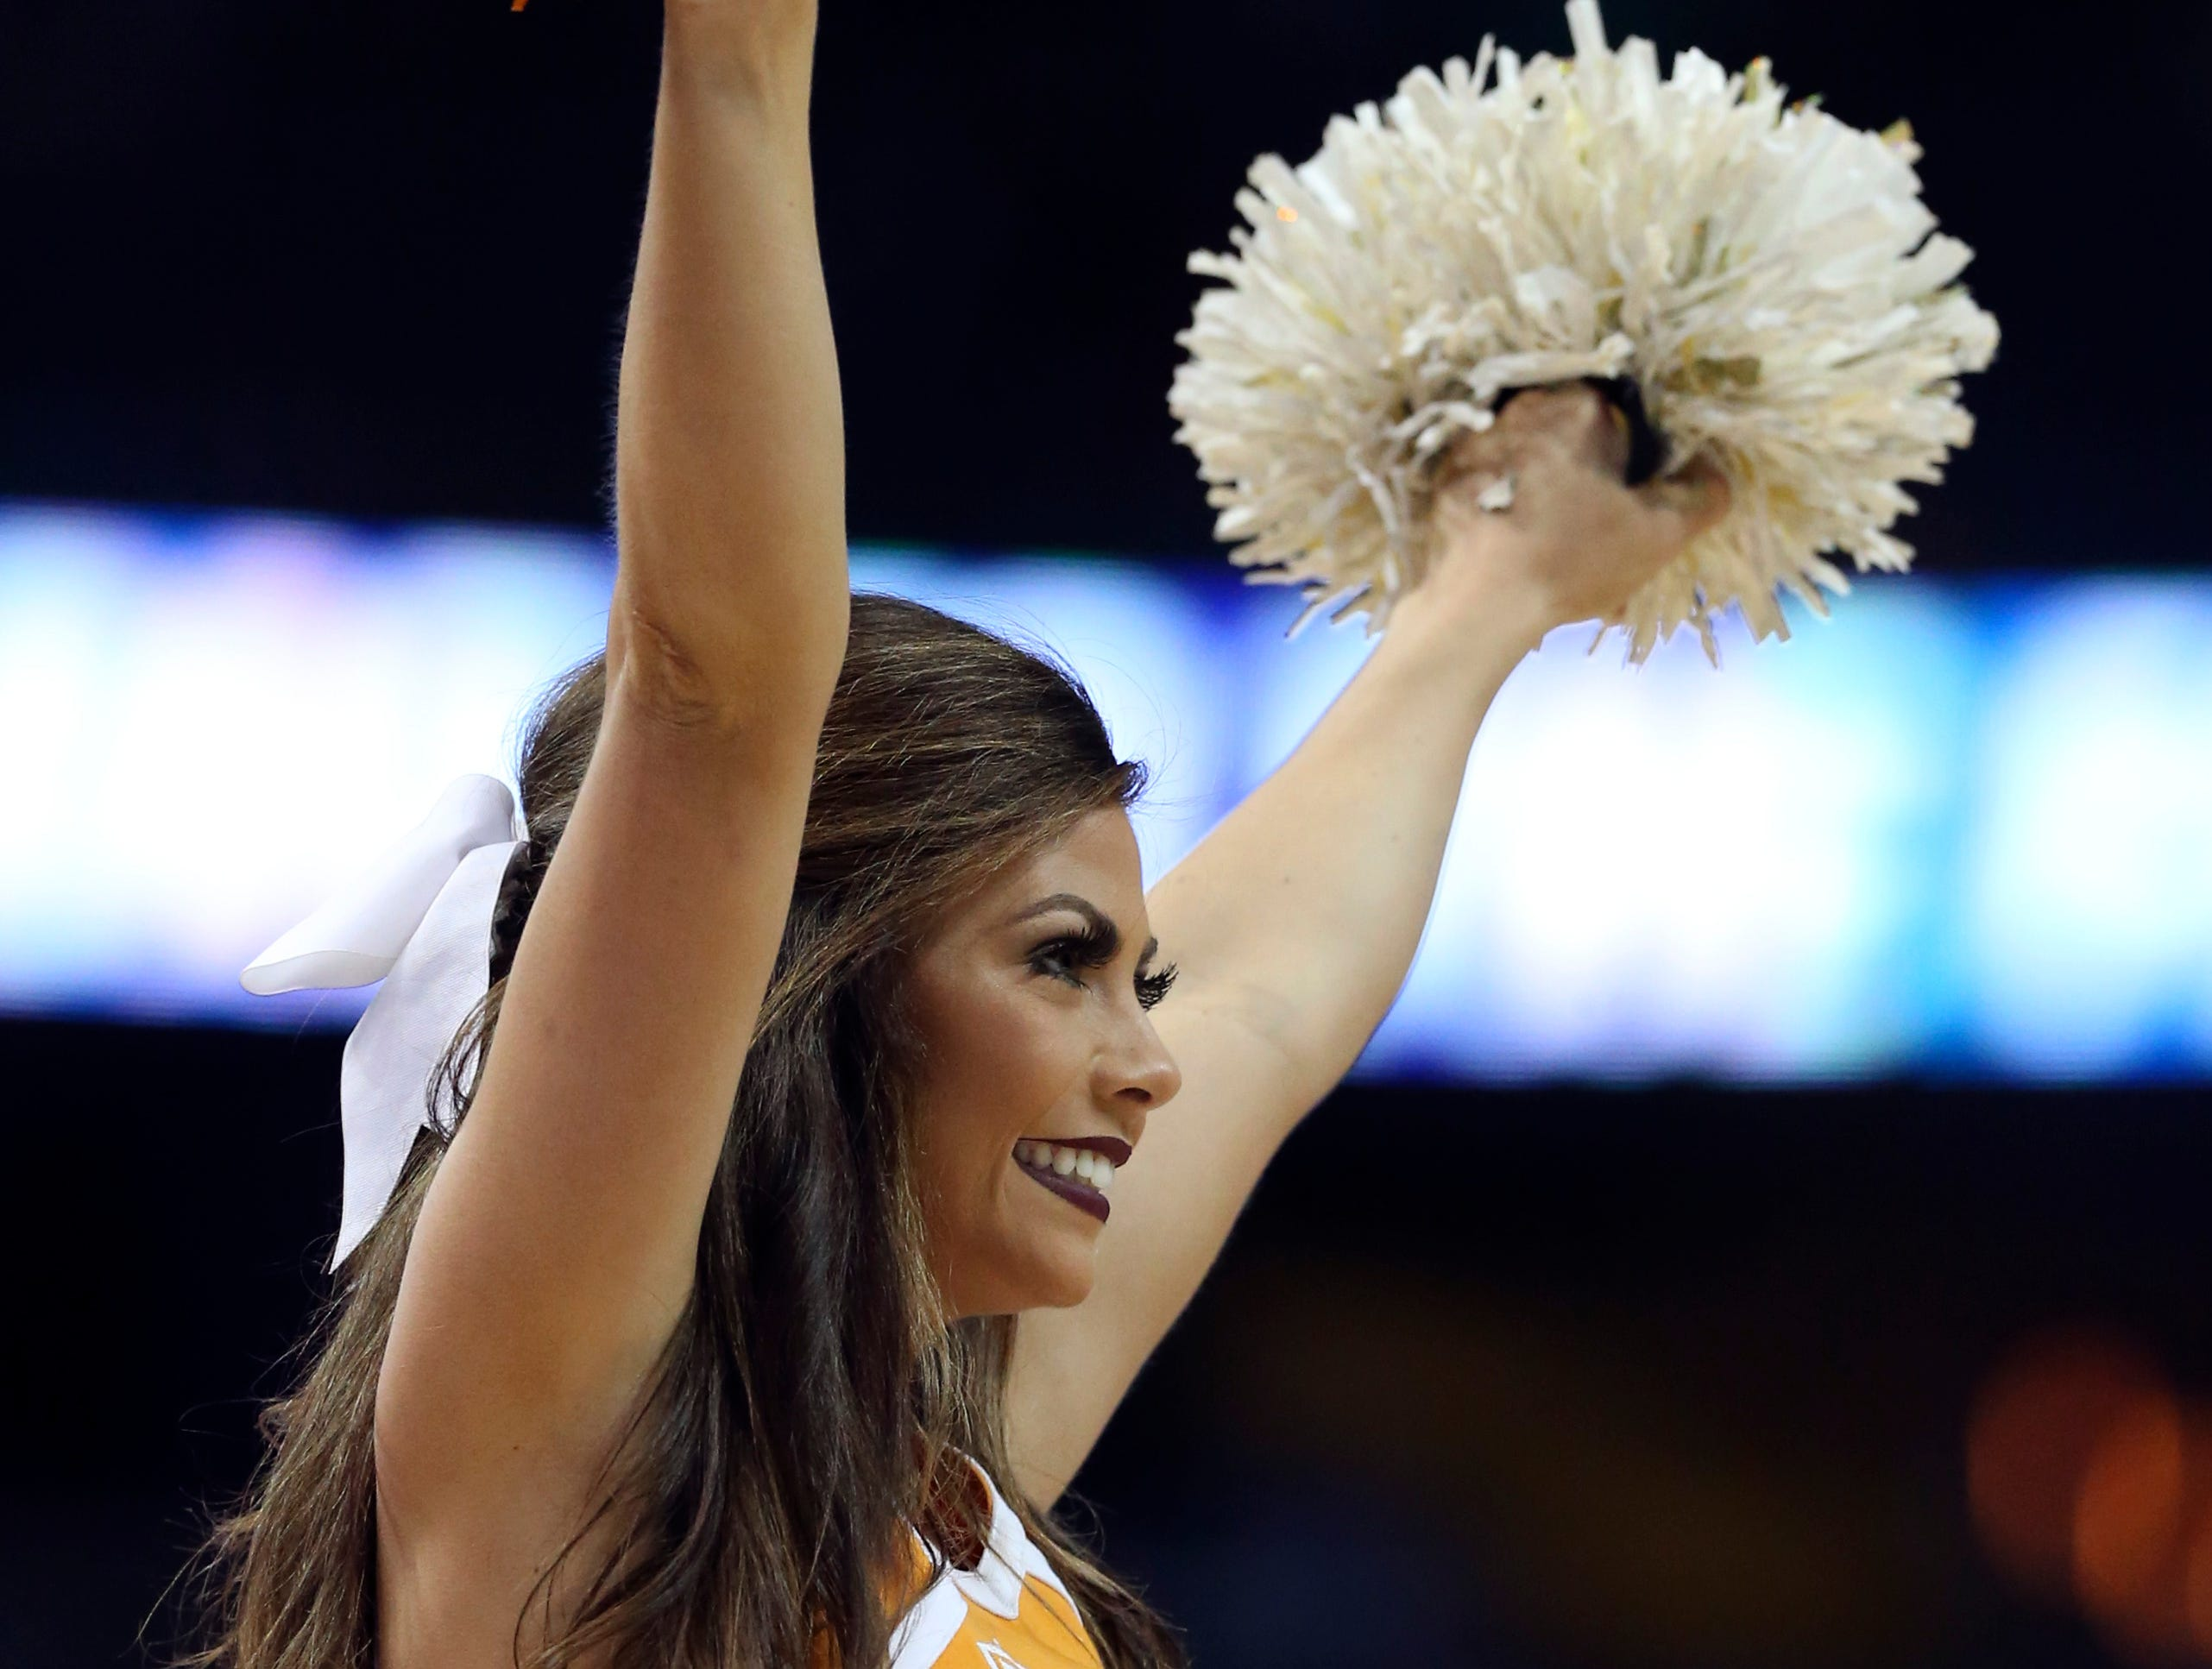 Mar 17, 2018; Dallas, TX, USA; Tennessee Volunteers cheerleader performs during the first half against the Loyola (Il) Ramblers in the second round of the 2018 NCAA Tournament at American Airlines Center.